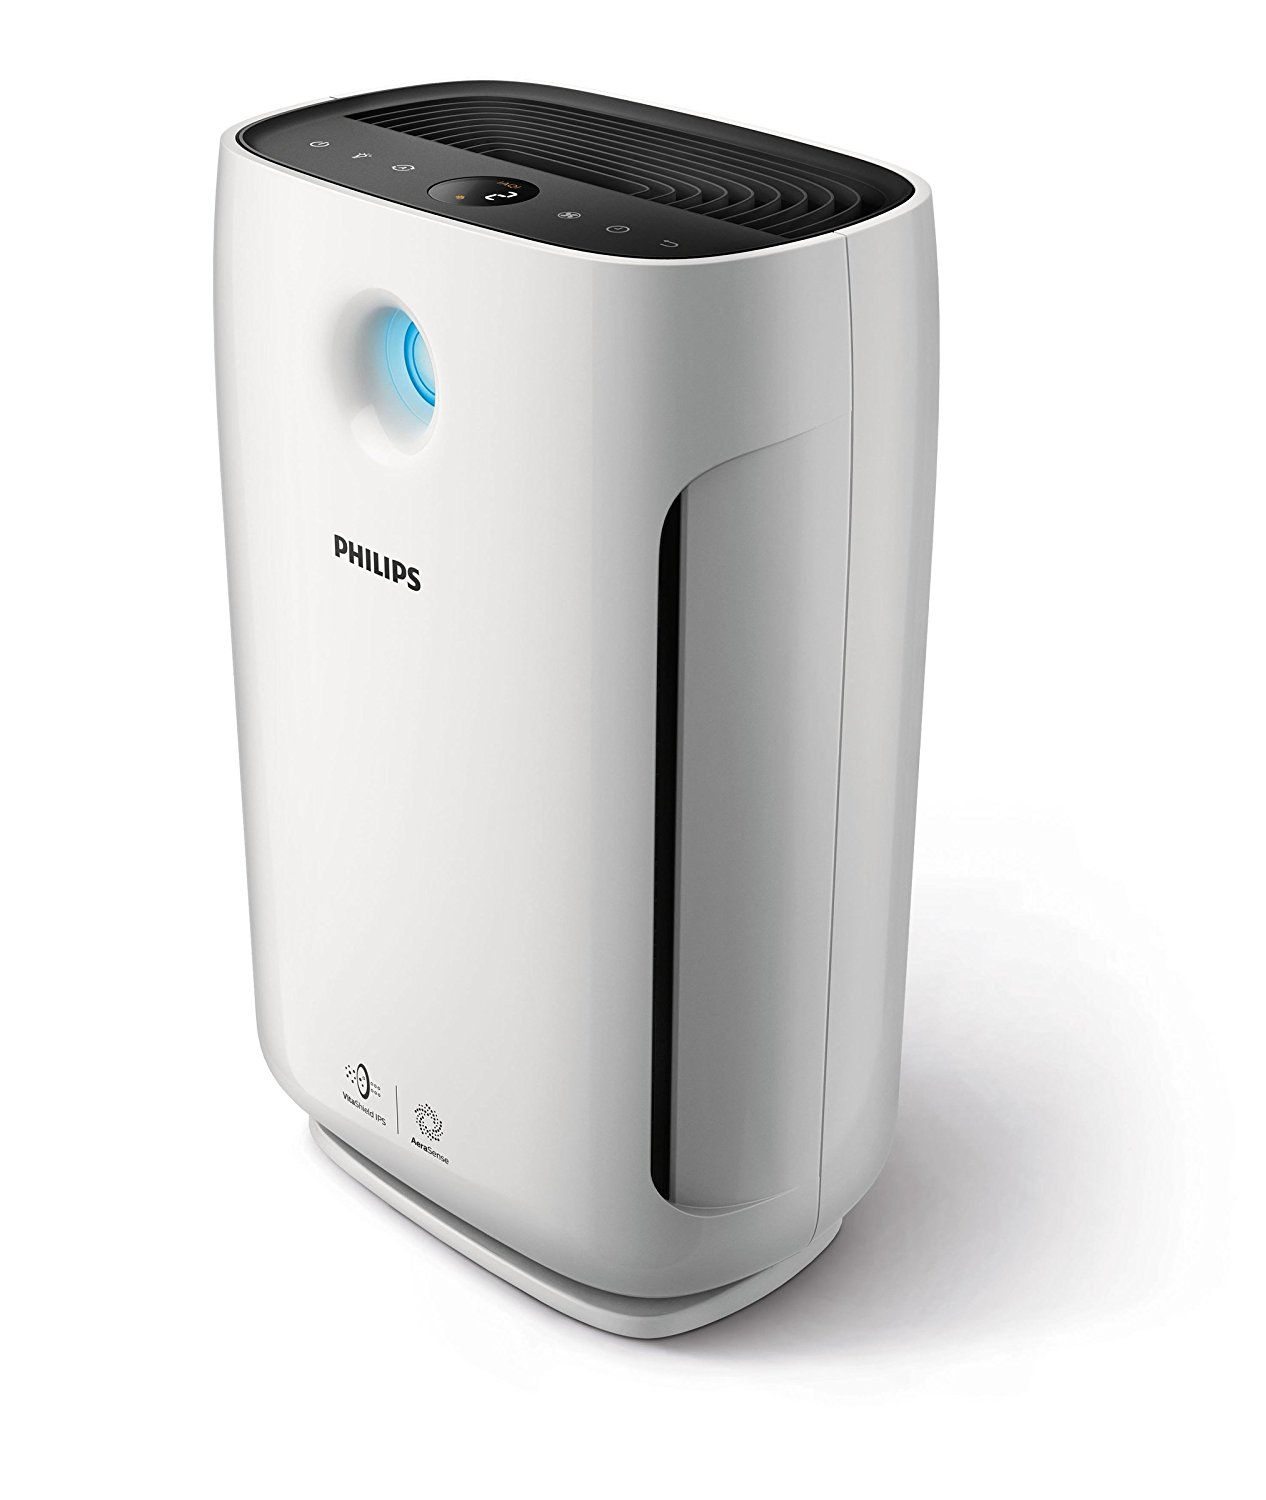 Philips Ac2885 40 Series 2000 Air Purifier Home Kitchen